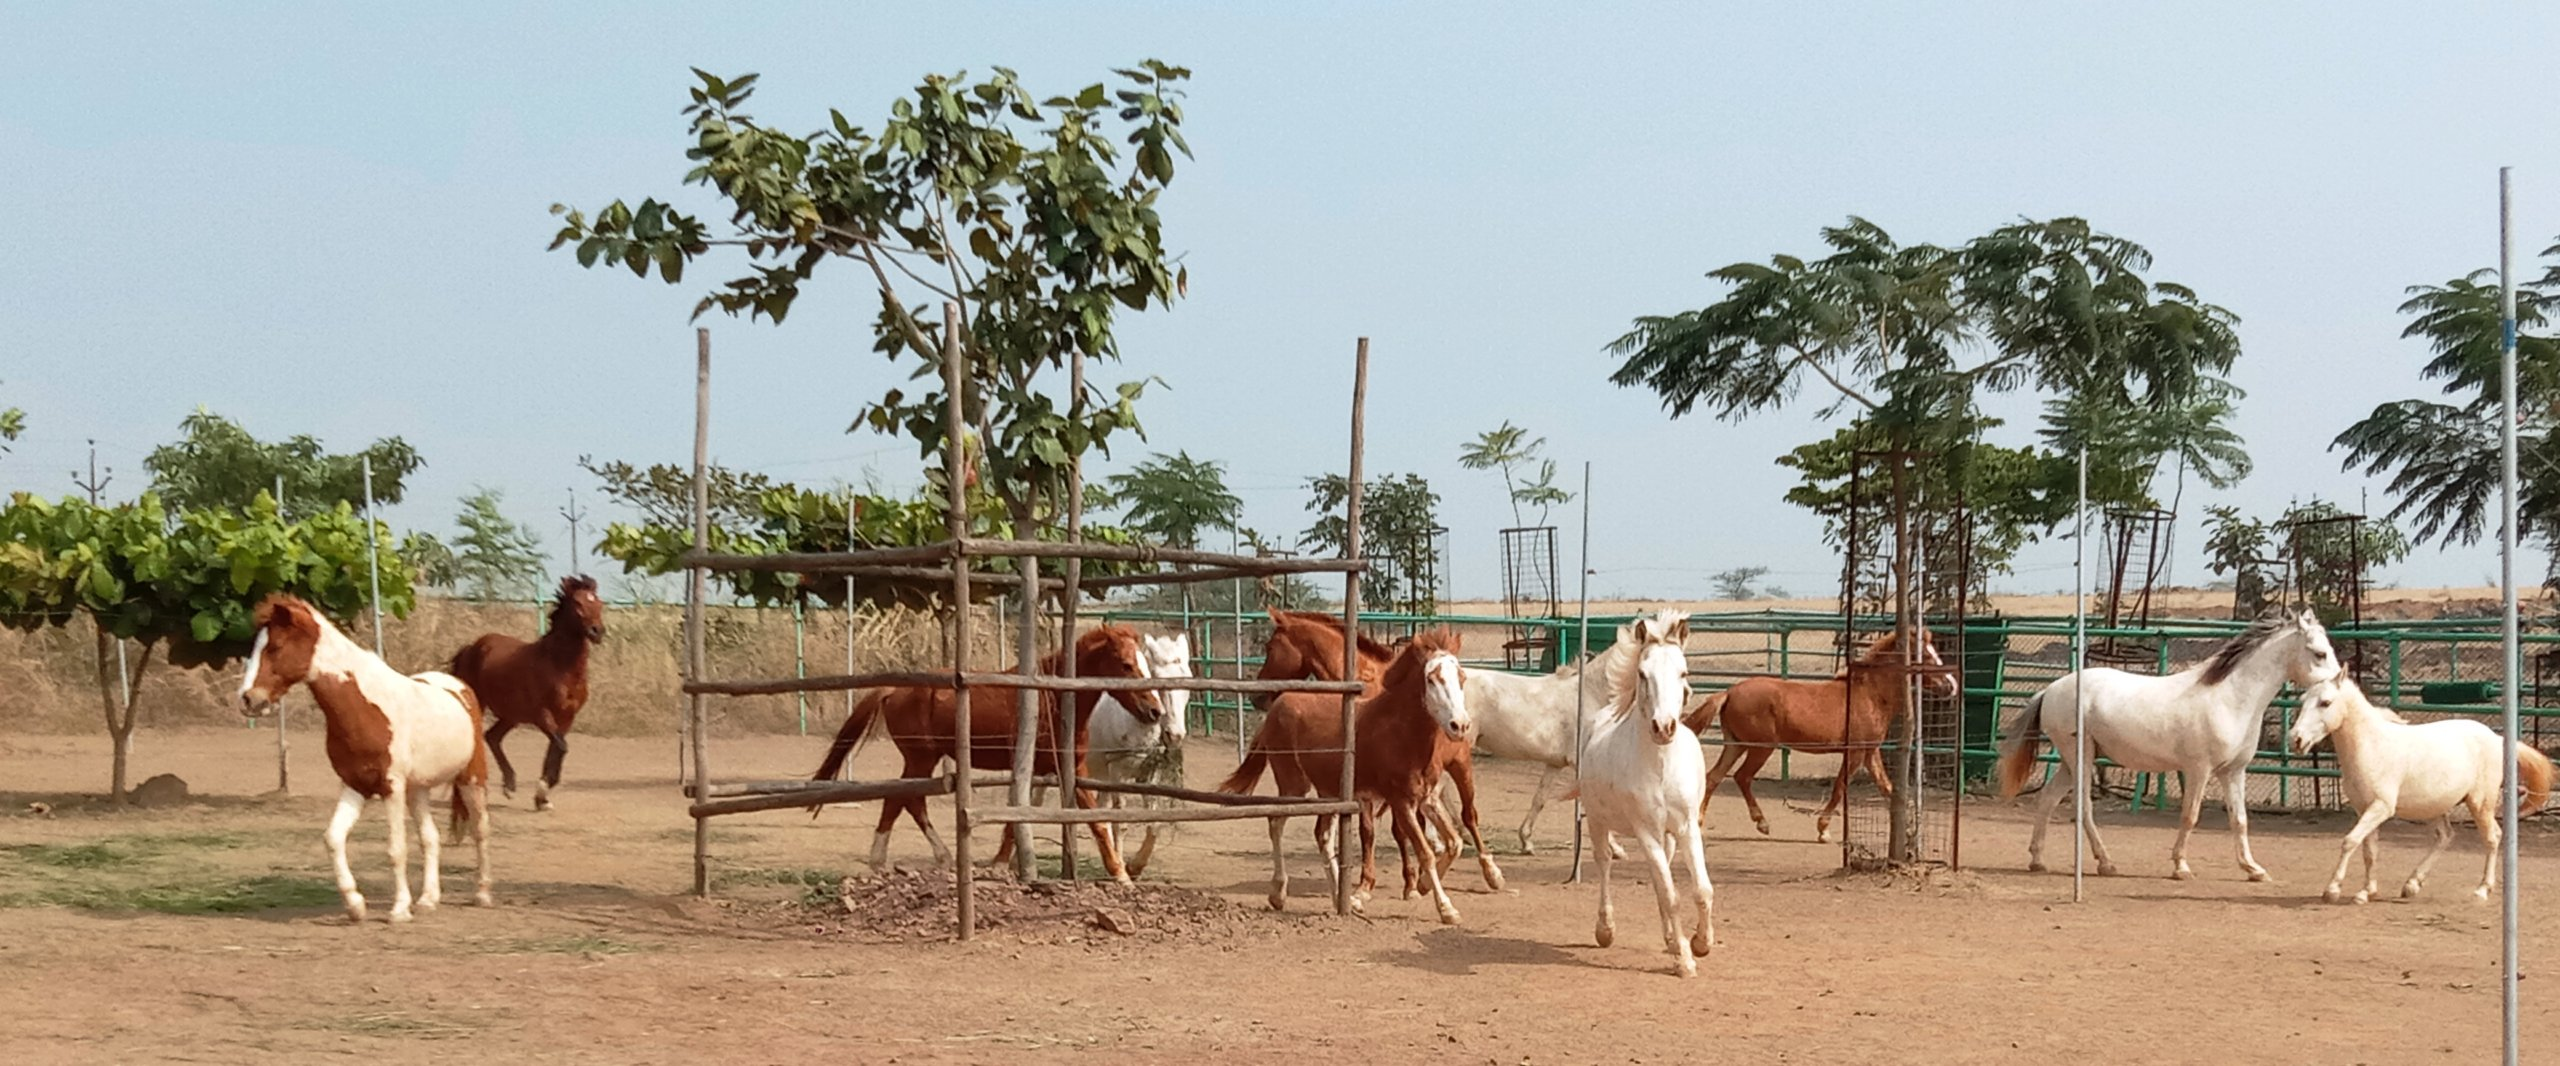 17 rescued horses from joyrides - Photo by Rahat